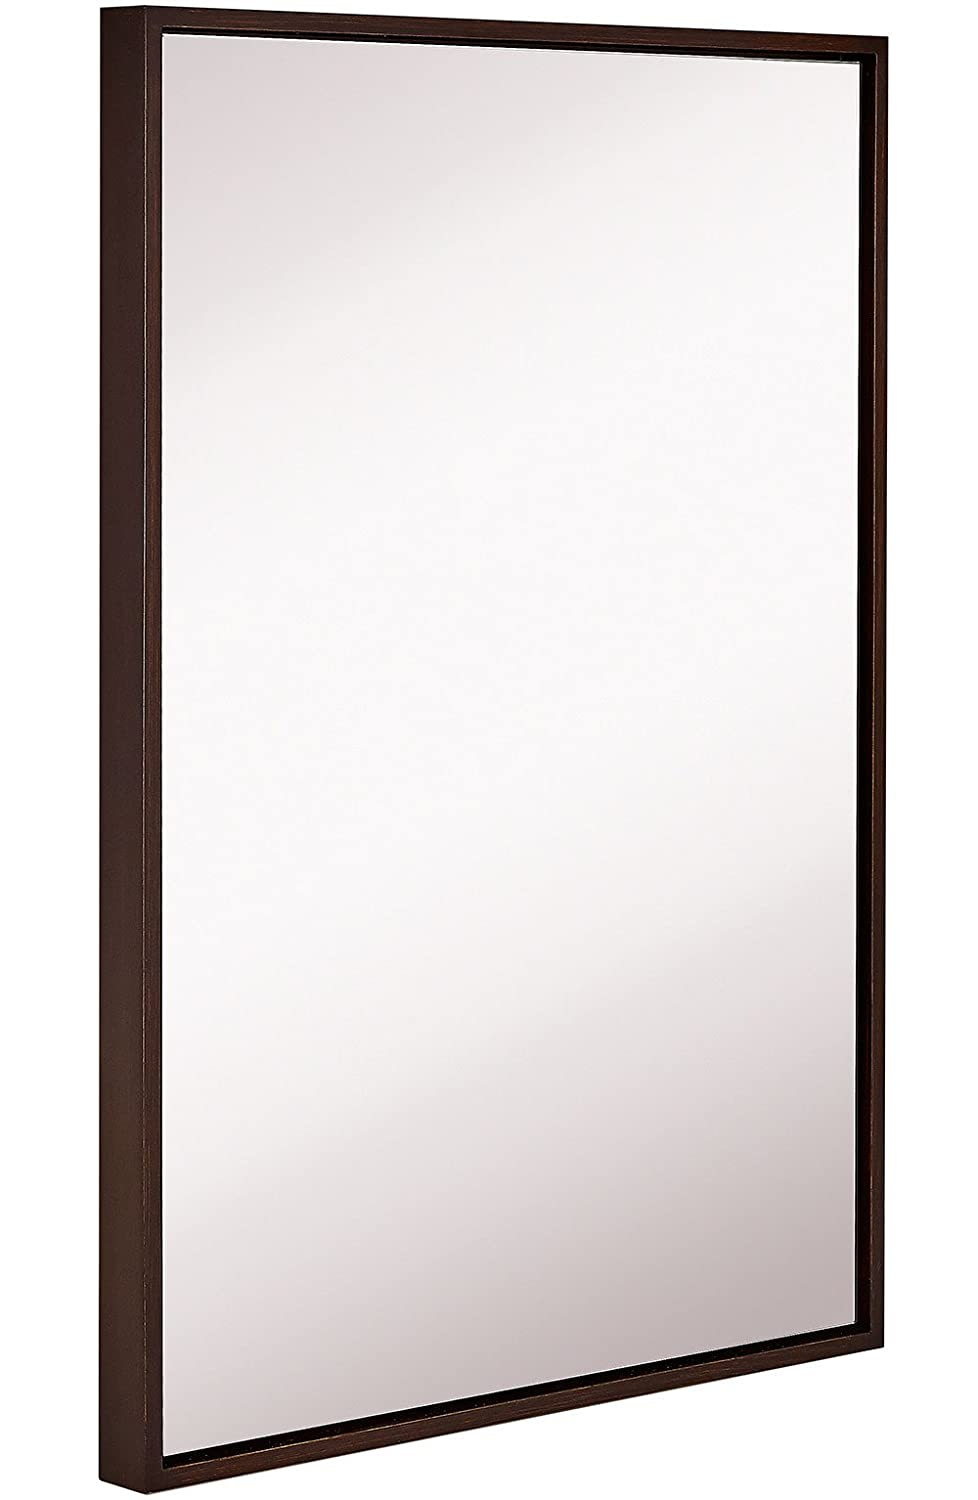 Hamilton Hills Clean Large Modern Wenge Frame Wall Mirror | Contemporary Premium Silver Backed Floating Glass Panel | Vanity, Bedroom, or Bathroom | Mirrored Rectangle Hangs Horizontal or Vertical